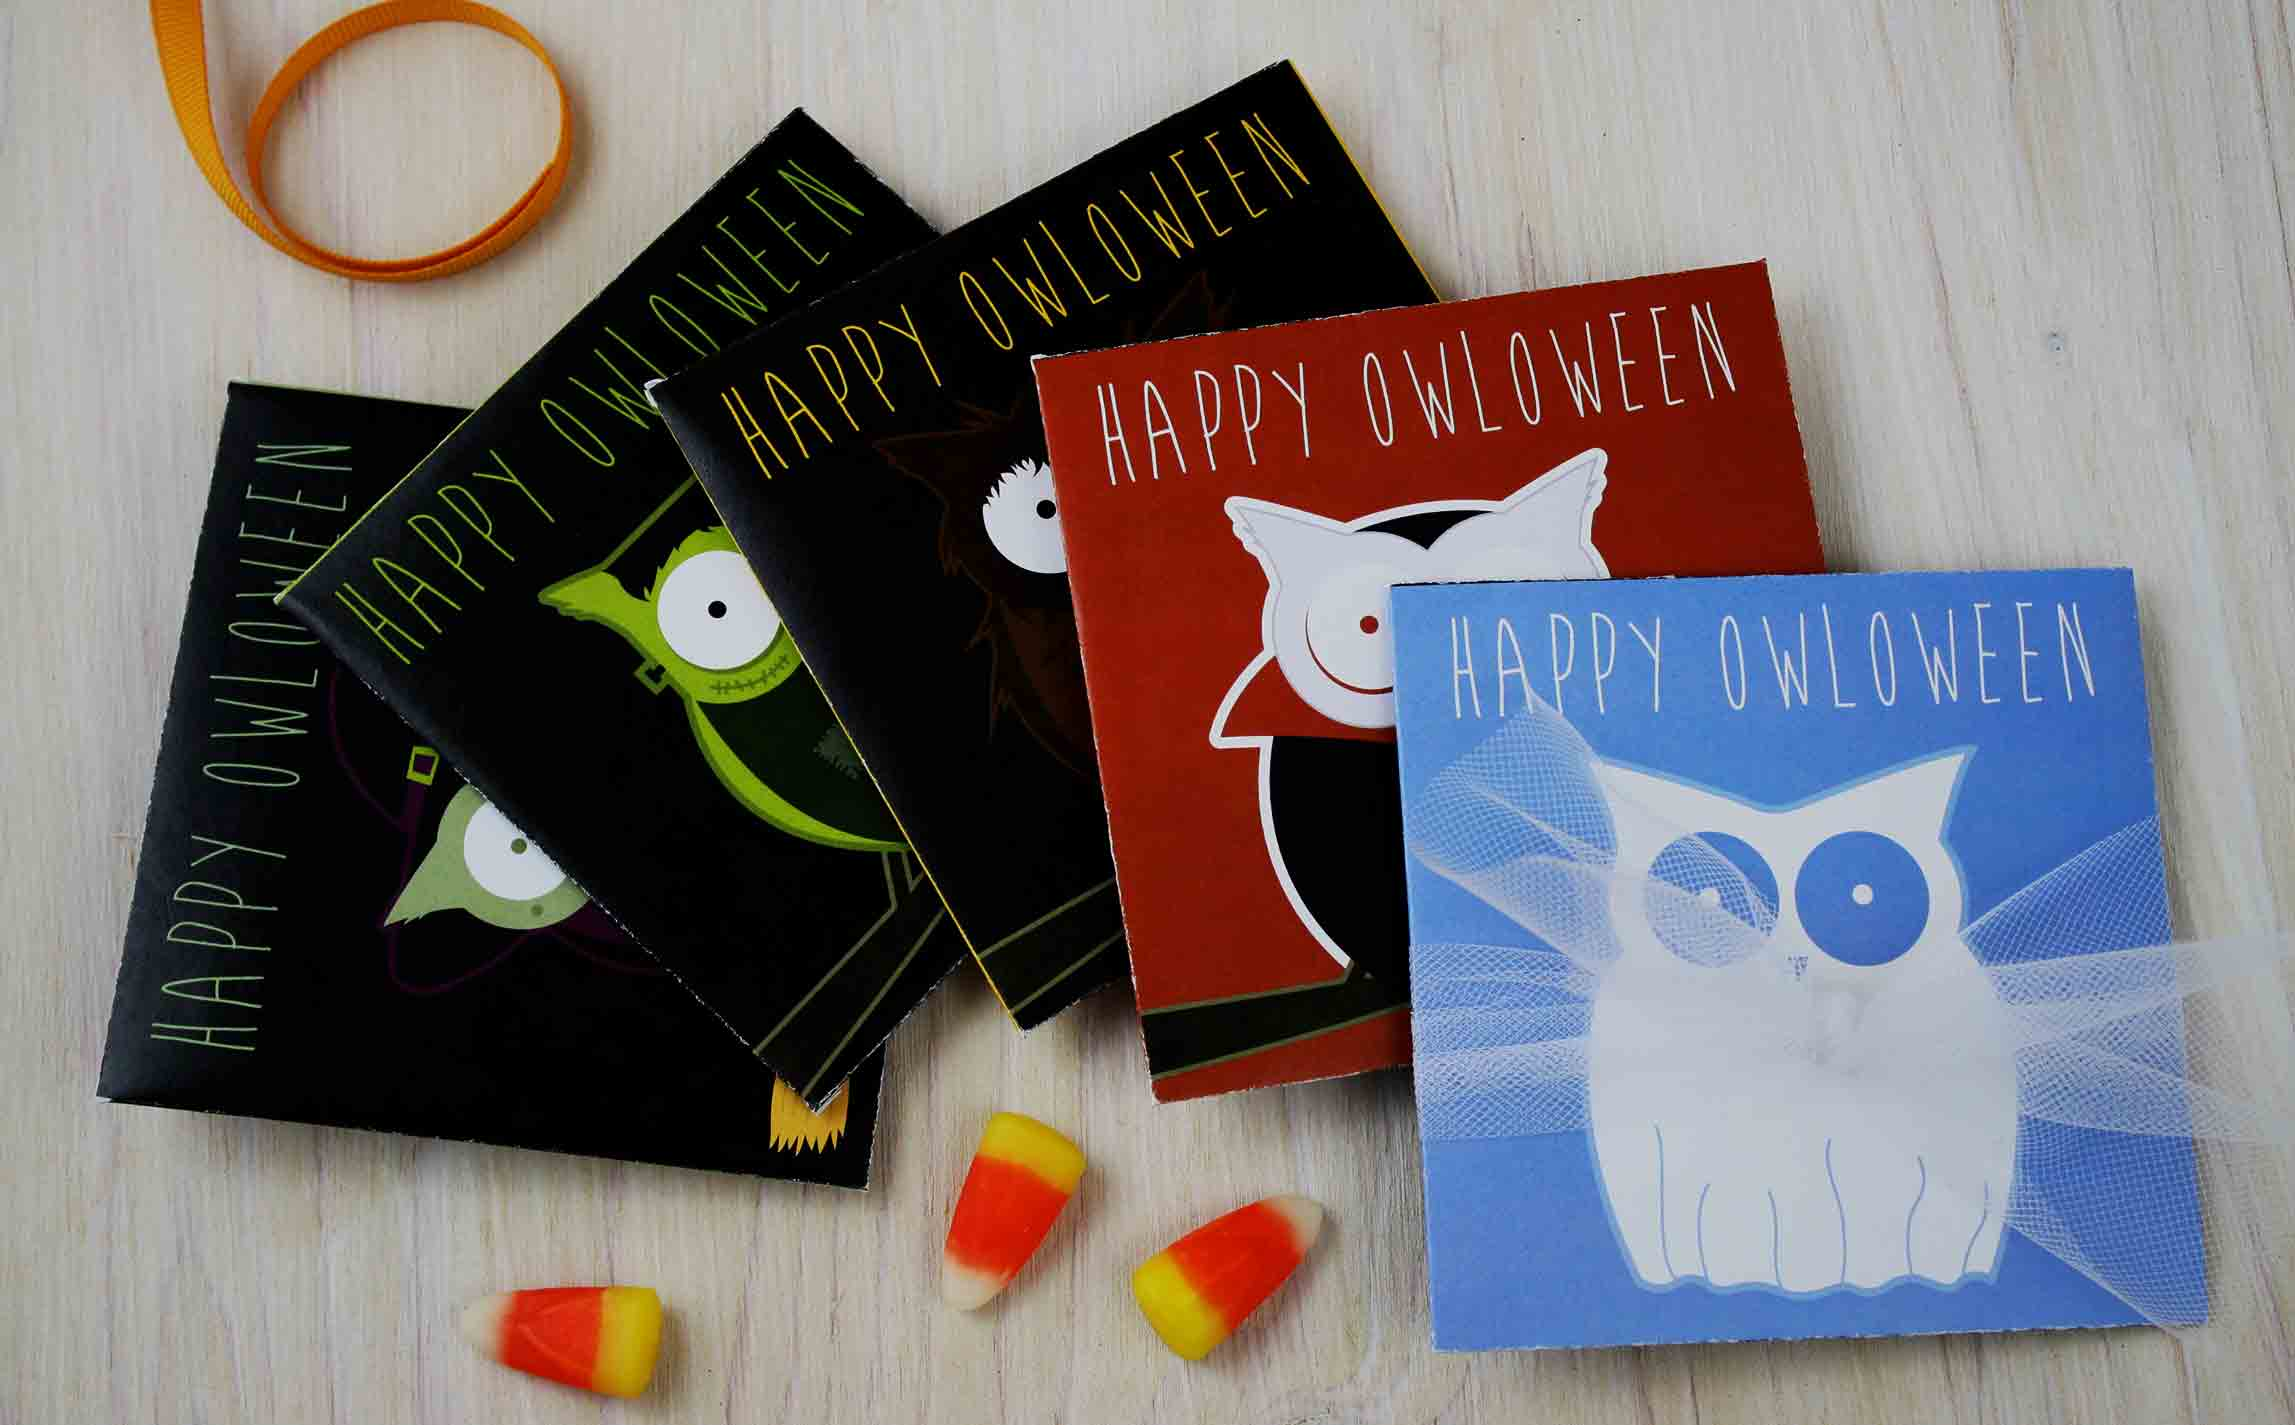 Happy OWLoween gift card holders